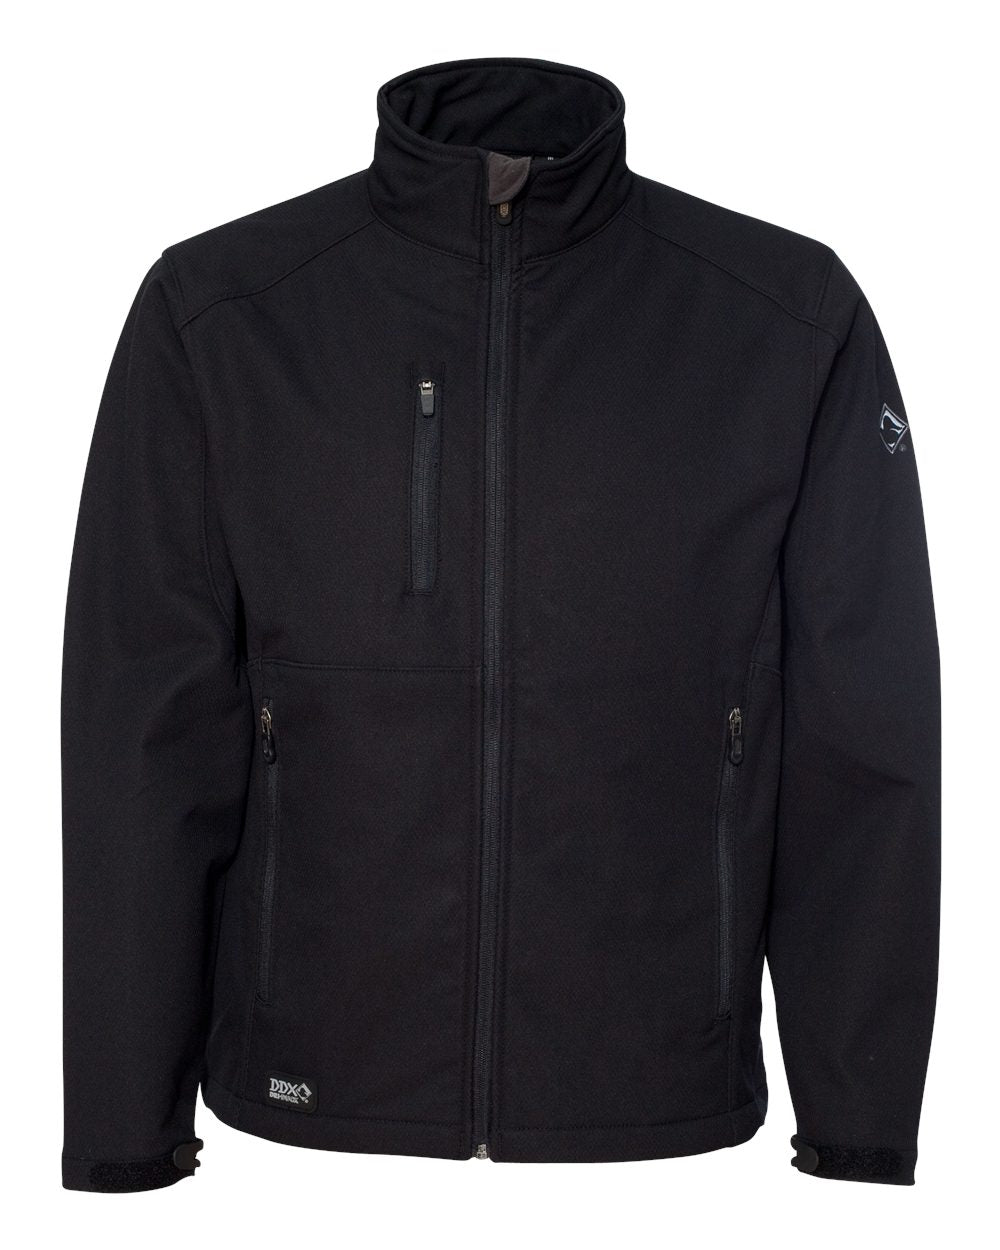 DRI DUCK - Acceleration Jacket - 5365